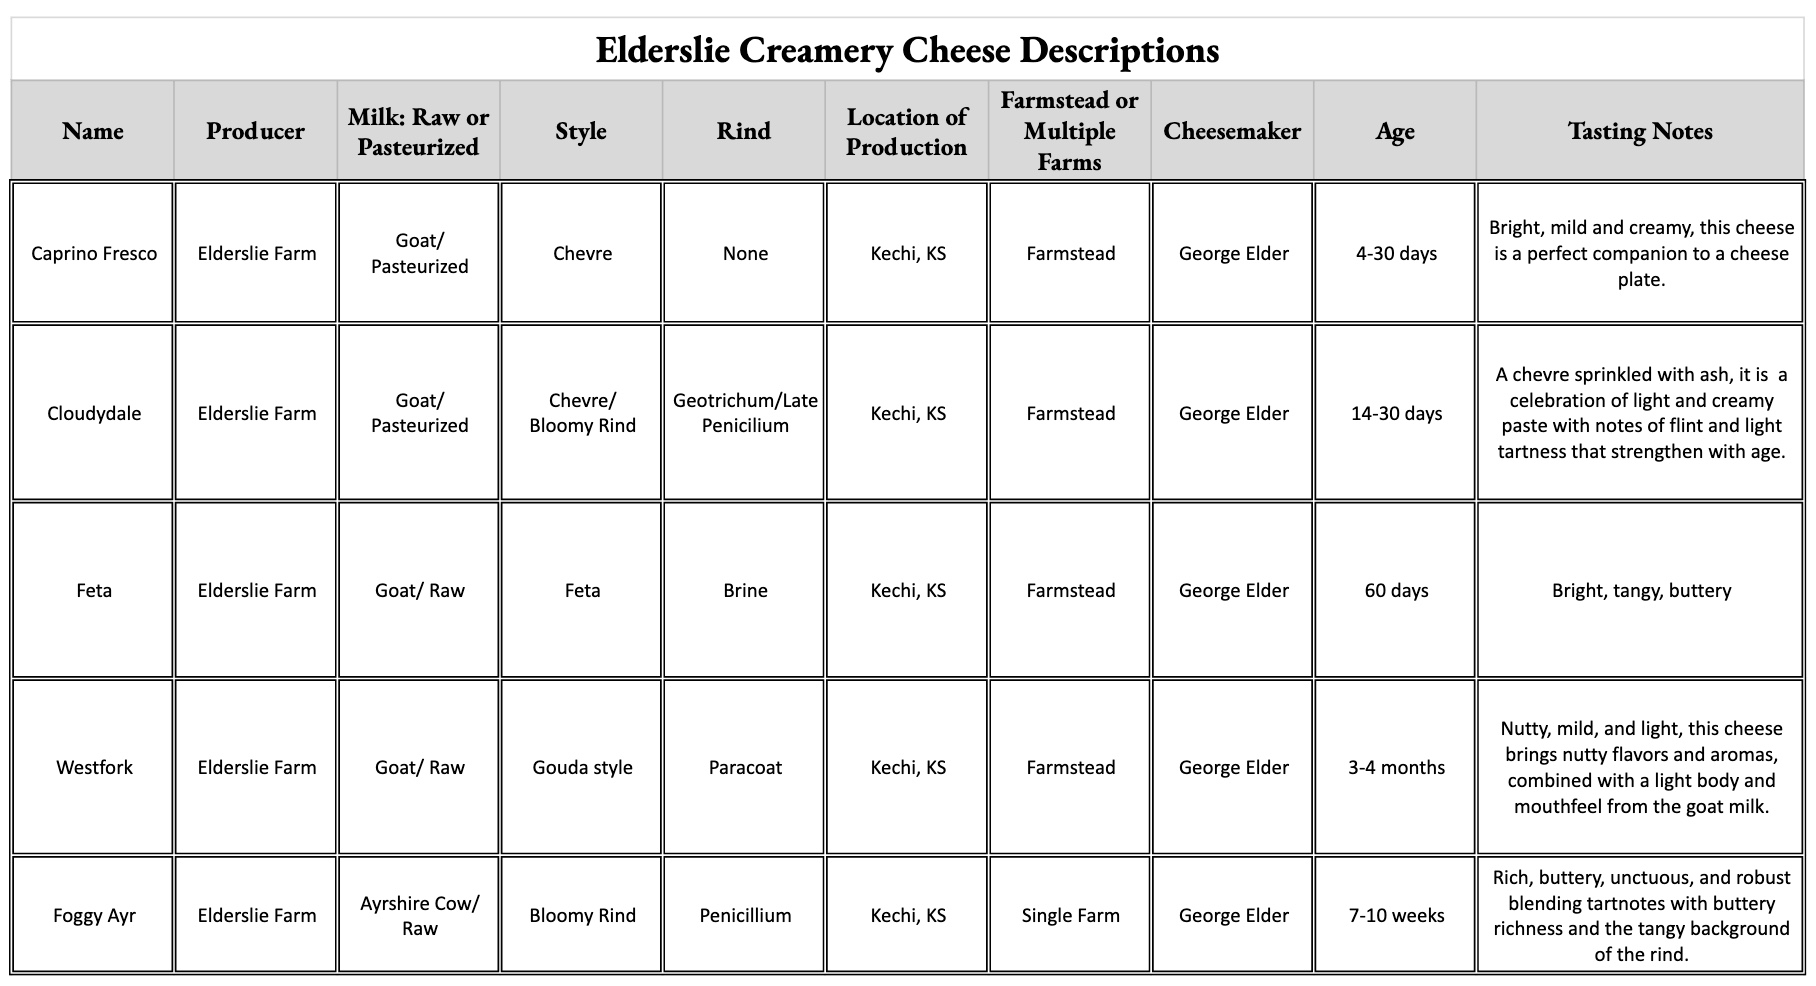 Elderslie Creamery Cheese